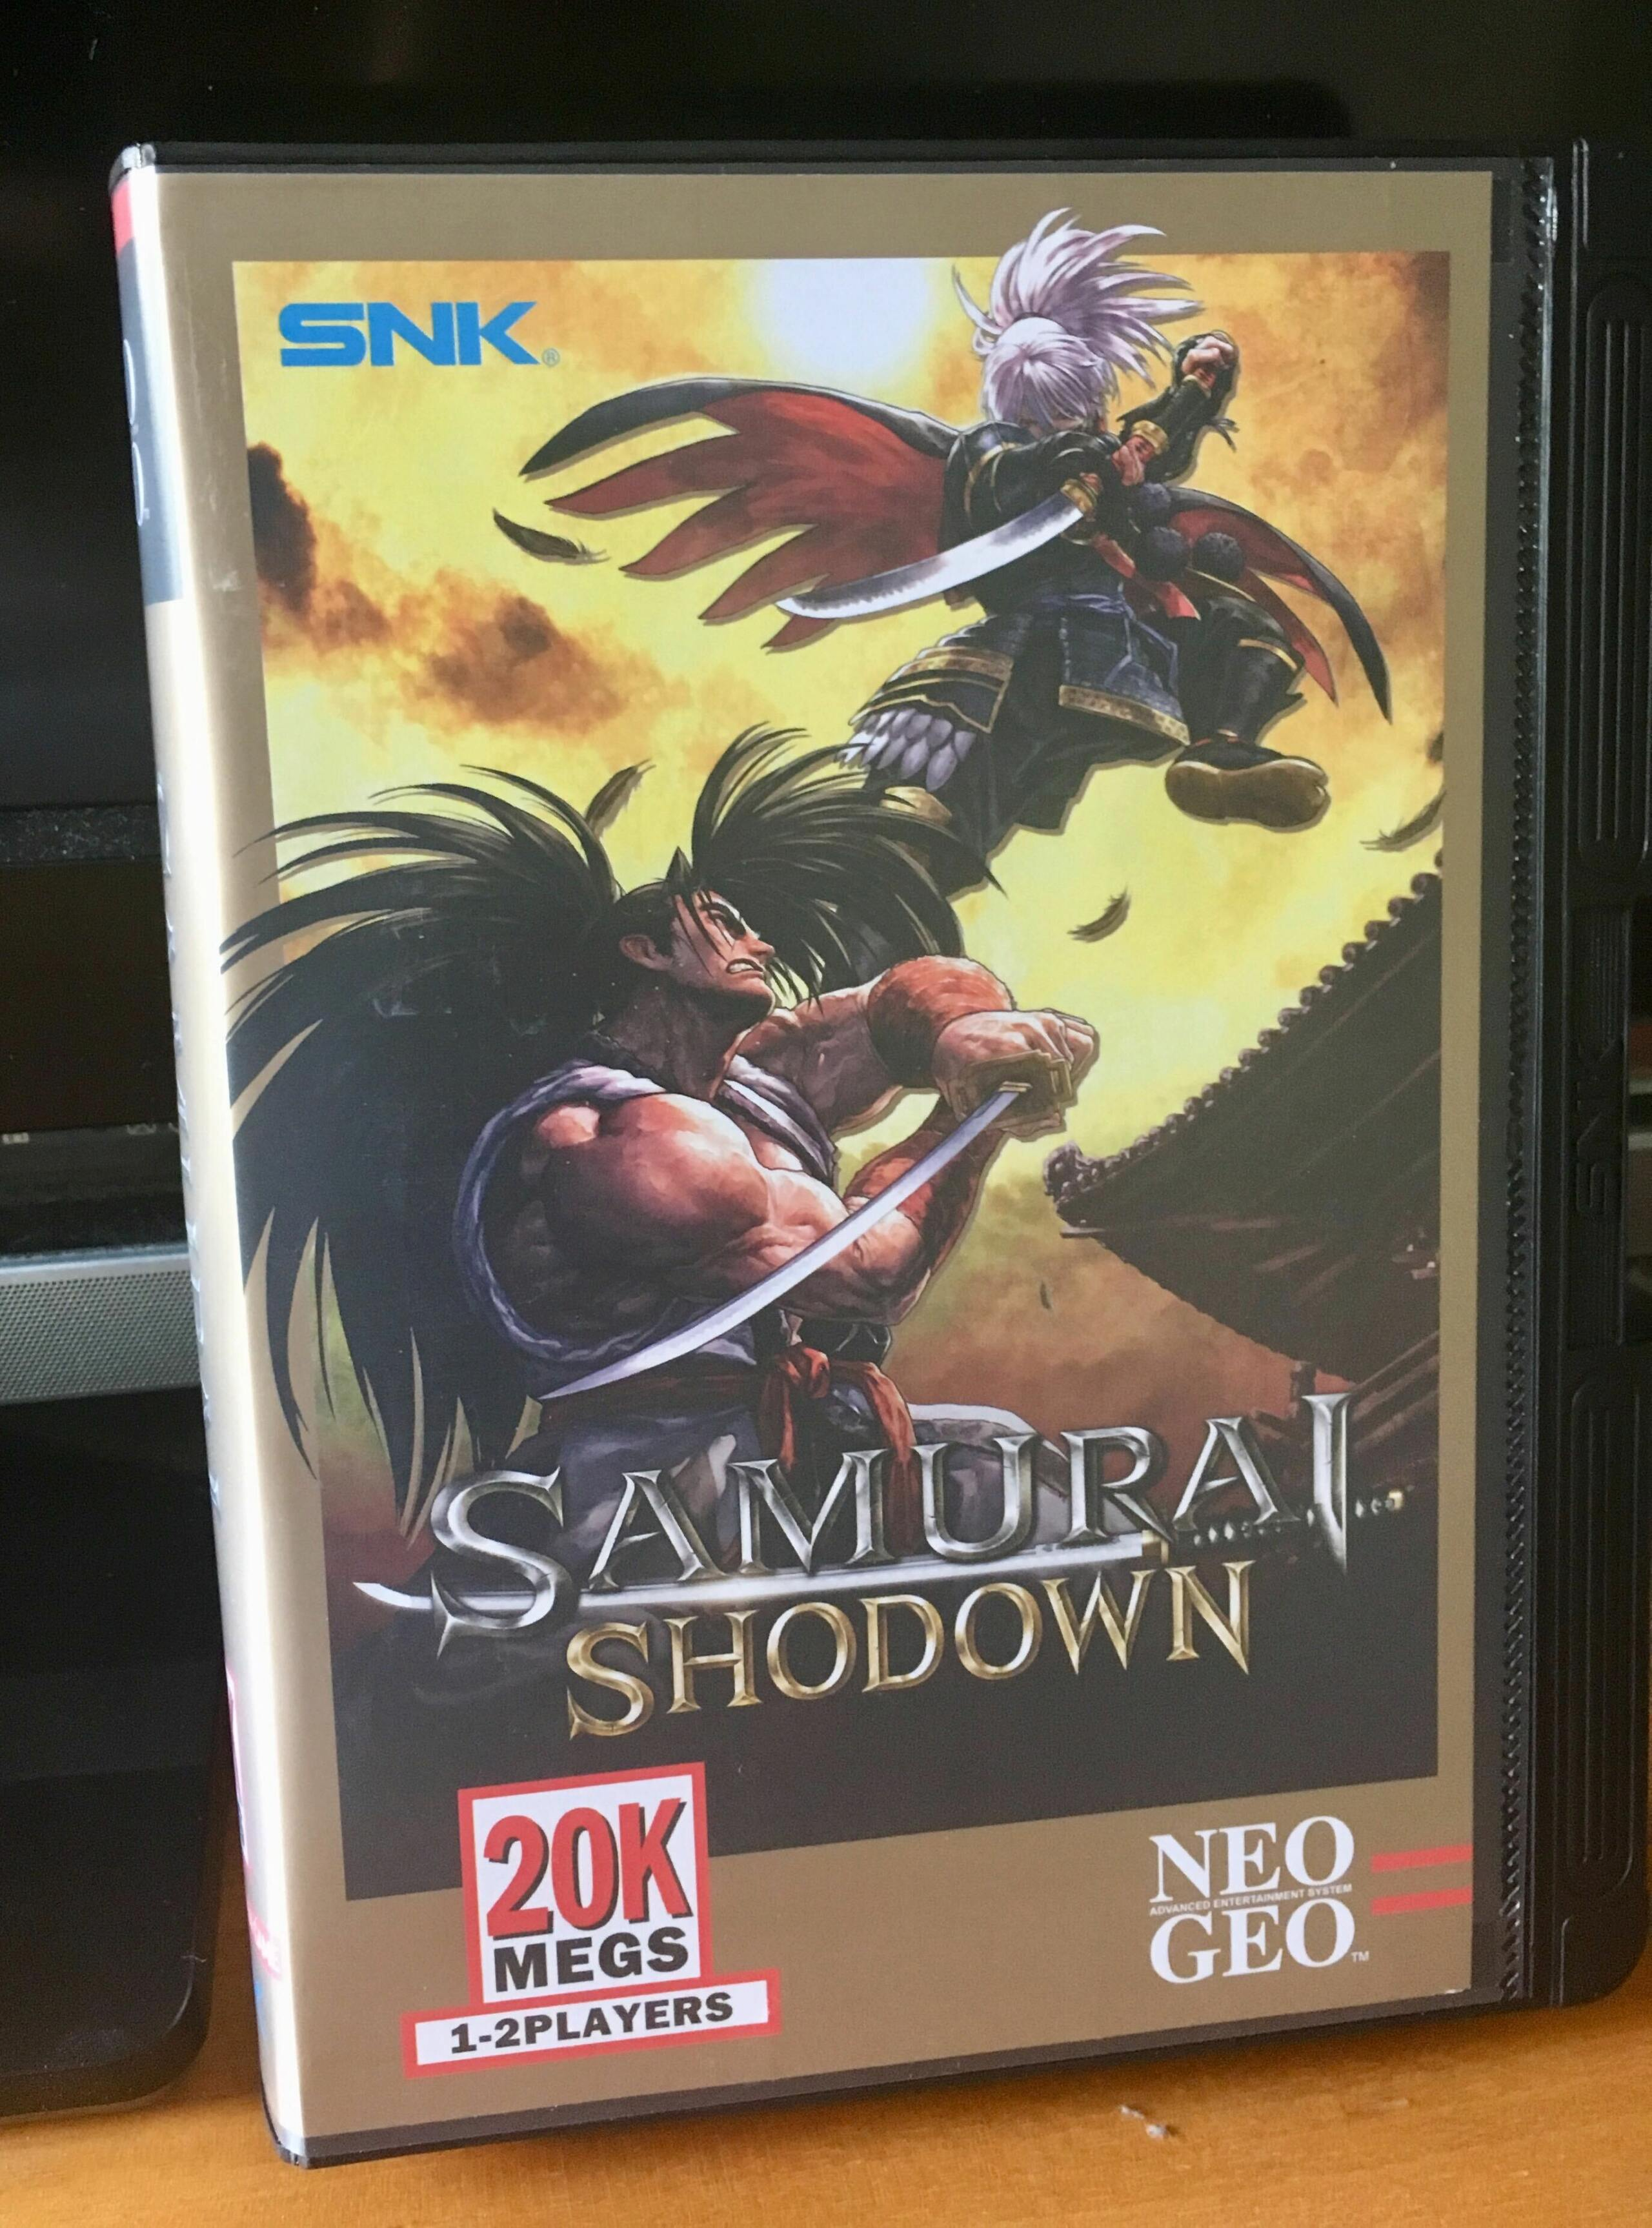 [VDS] Samurai Shodown Shockbox Gold Edition, GRIS first print, Skyrim, Lapis XL, Ghost Blade, Riot Image_15